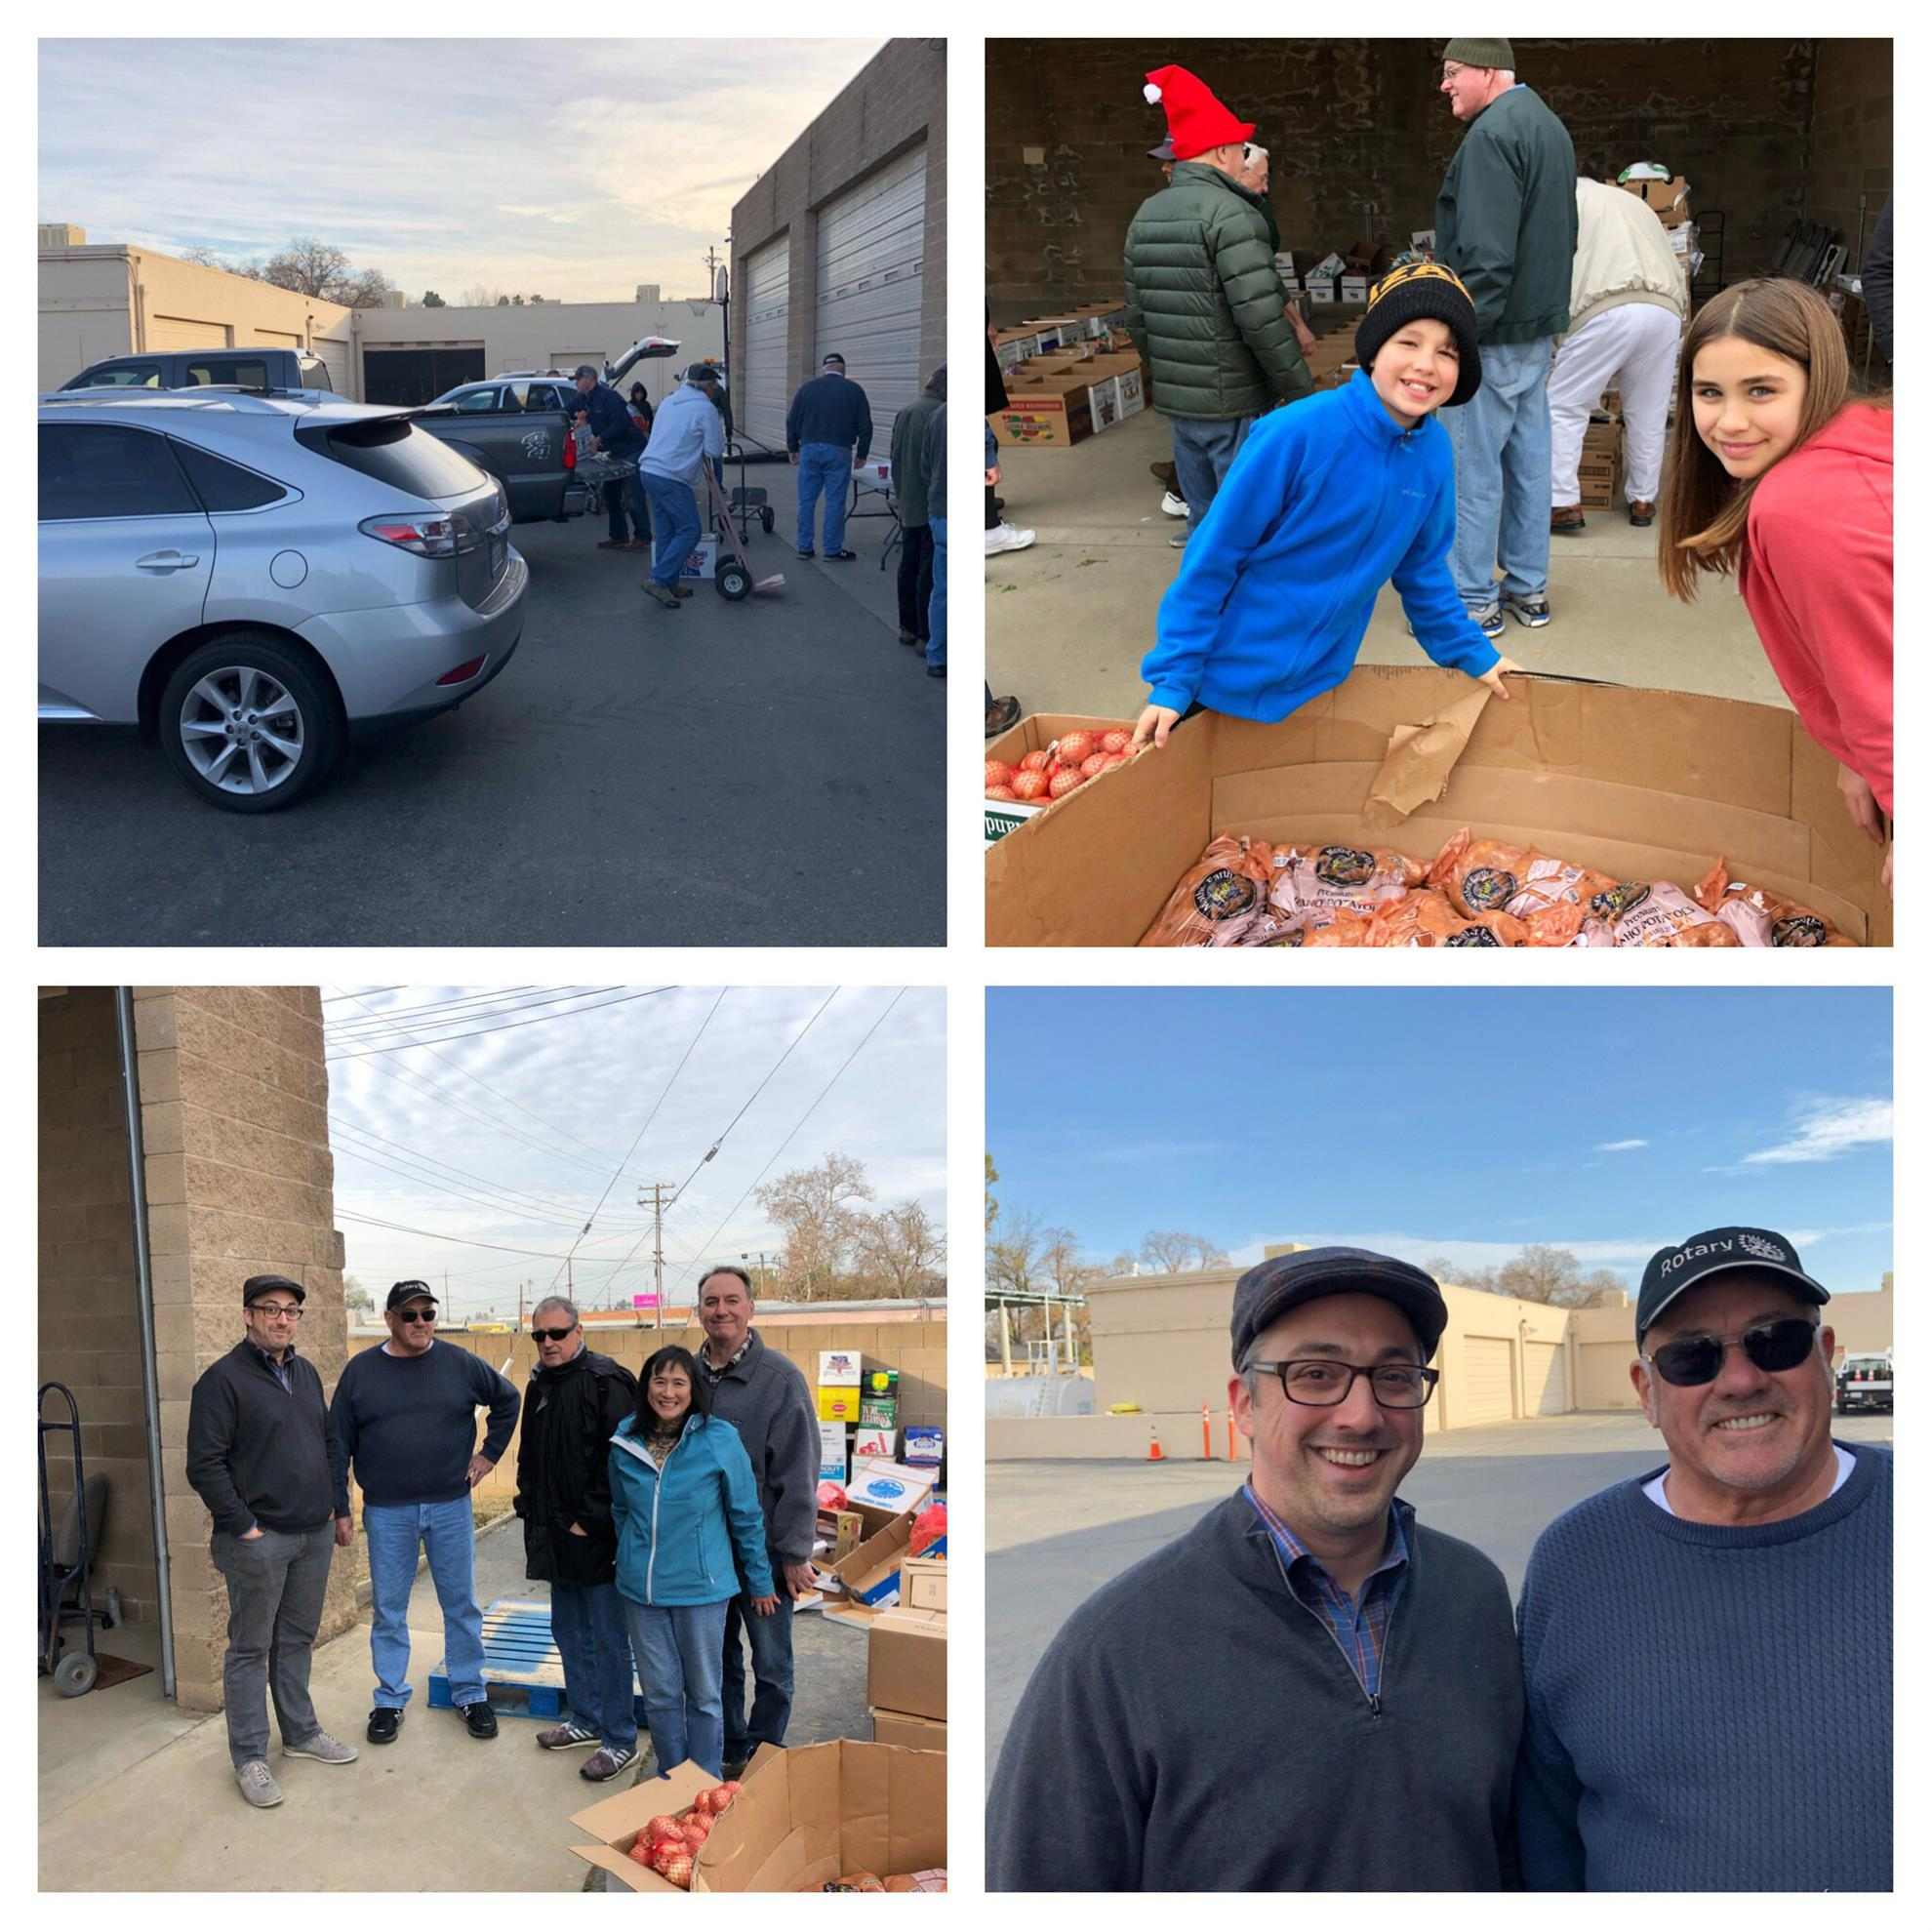 ... Plath for his leadership of the project and to high schools in the area  for providing us with the names and addresses of the needy families. Pics  below: